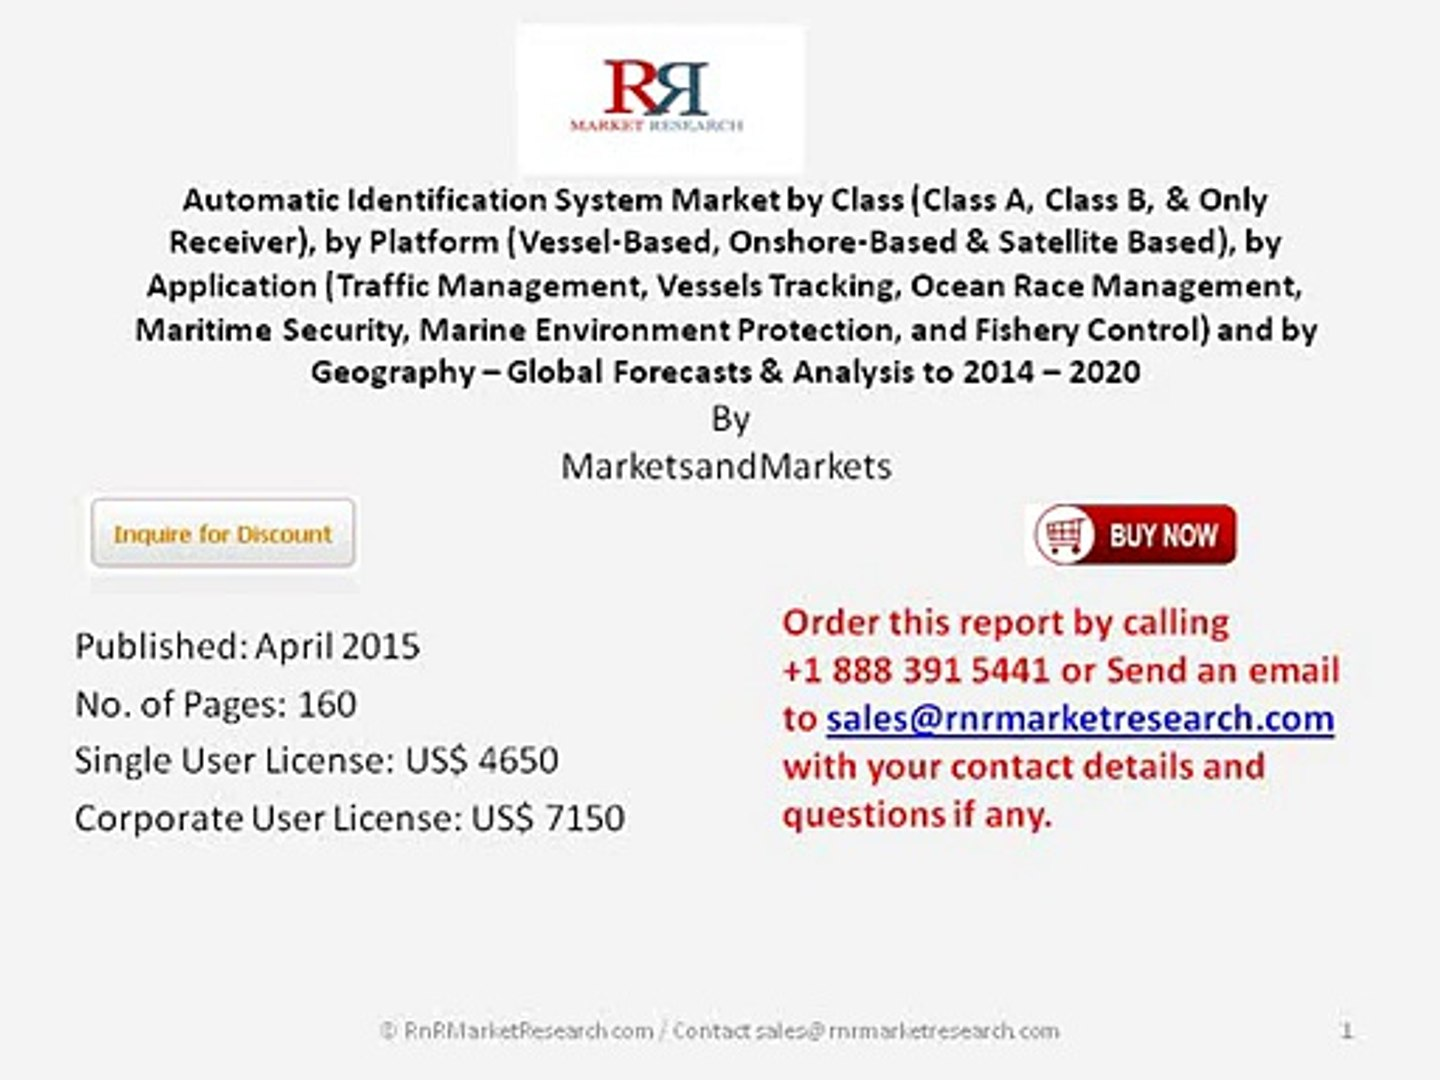 Worldwide Automatic Identification System Market Trends 2020 by Market Size, Application and Platfor